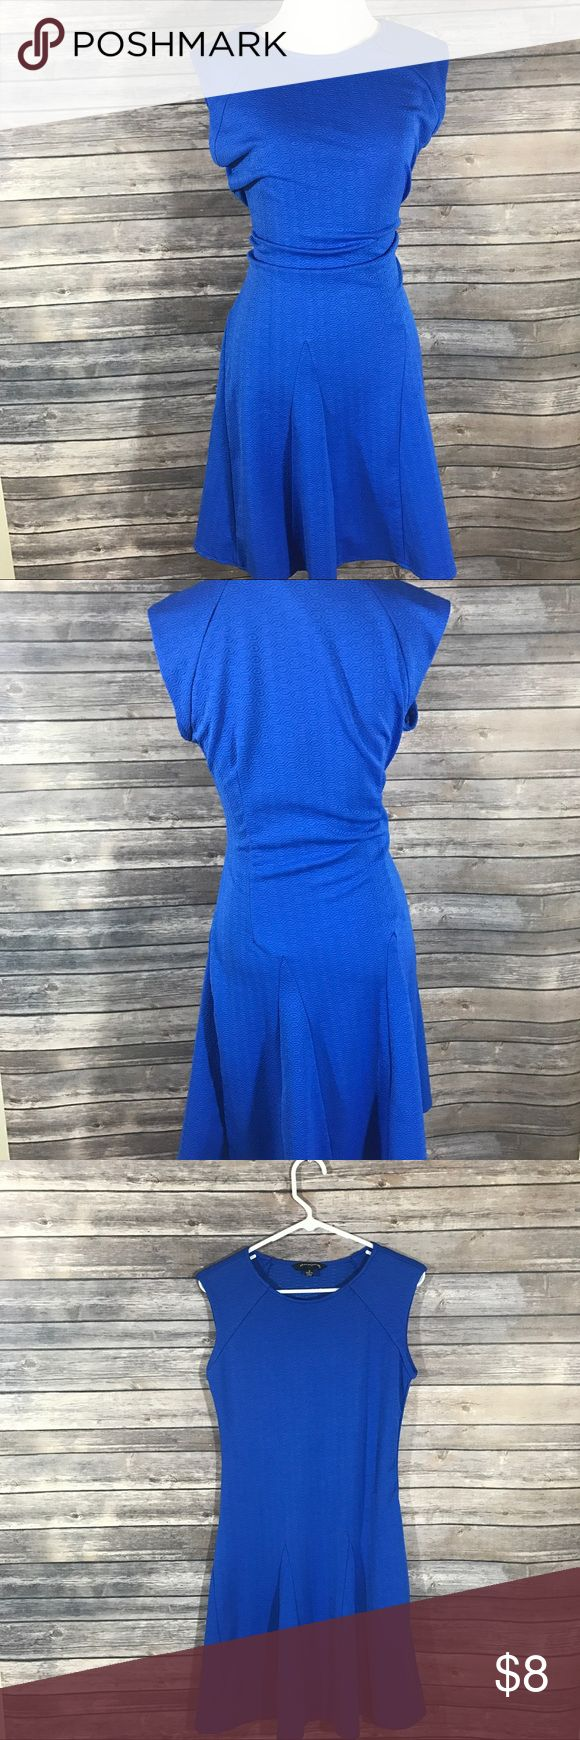 Royal blue dress Royal blue dress perfect for a casual day out with a denim jacket or worn for a business casual day dresses up with a blazer. Size is 16 BUT will definitely fit a large more comfortably. No holes or stains Dresses Midi